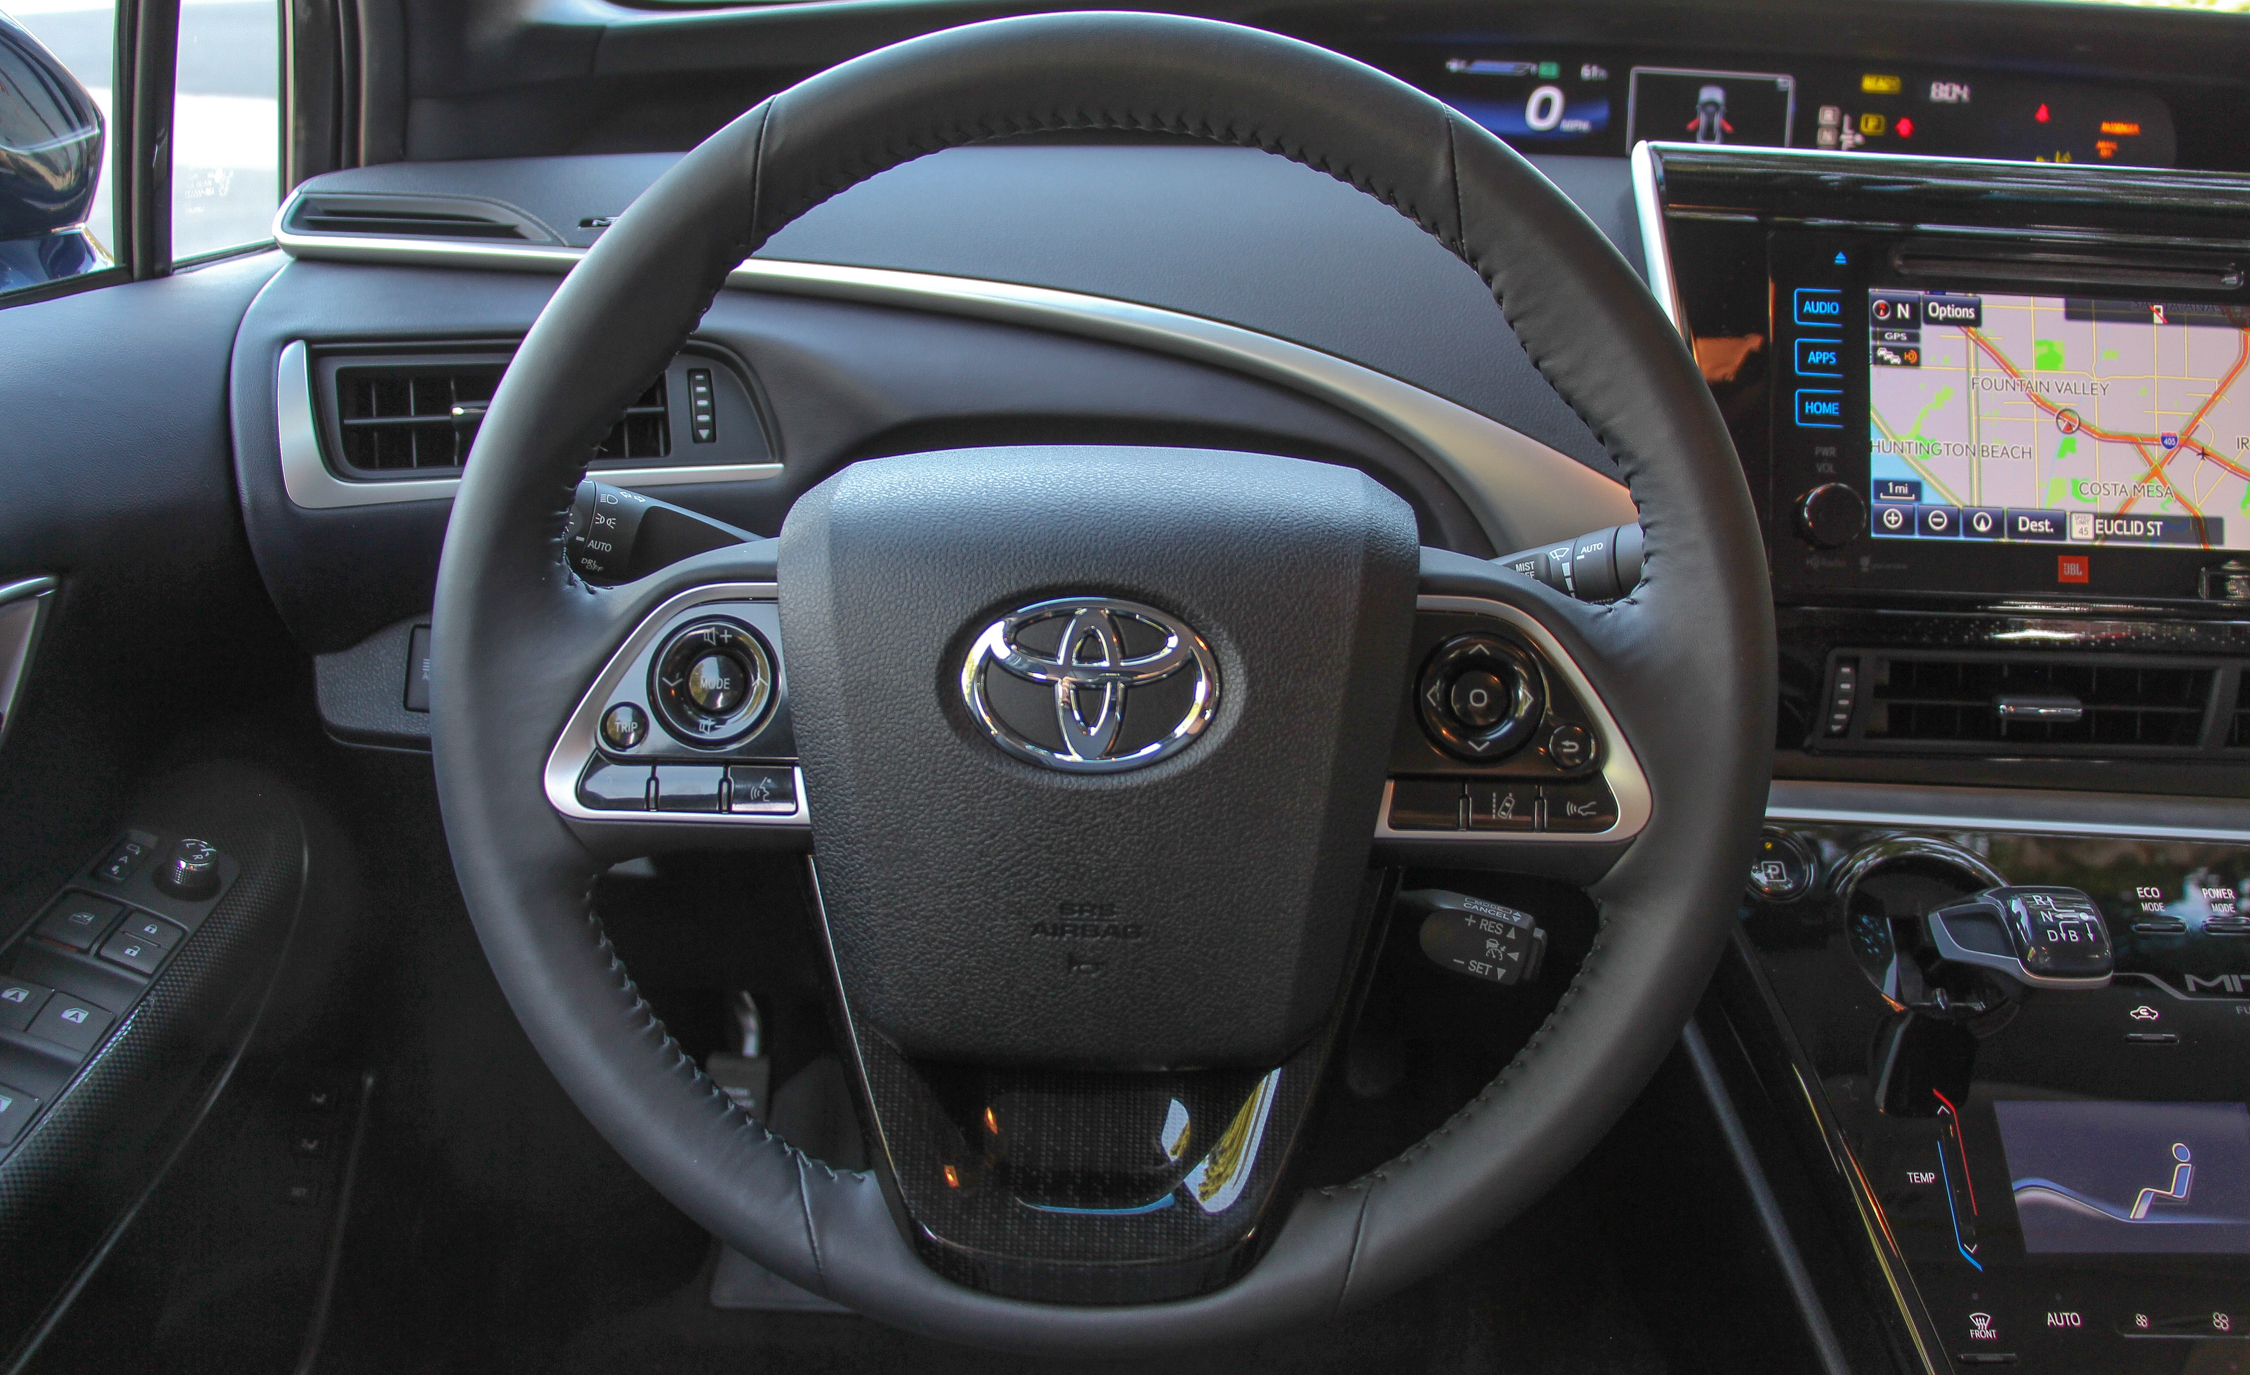 2016 Toyota Mirai Interior Steering (View 18 of 18)